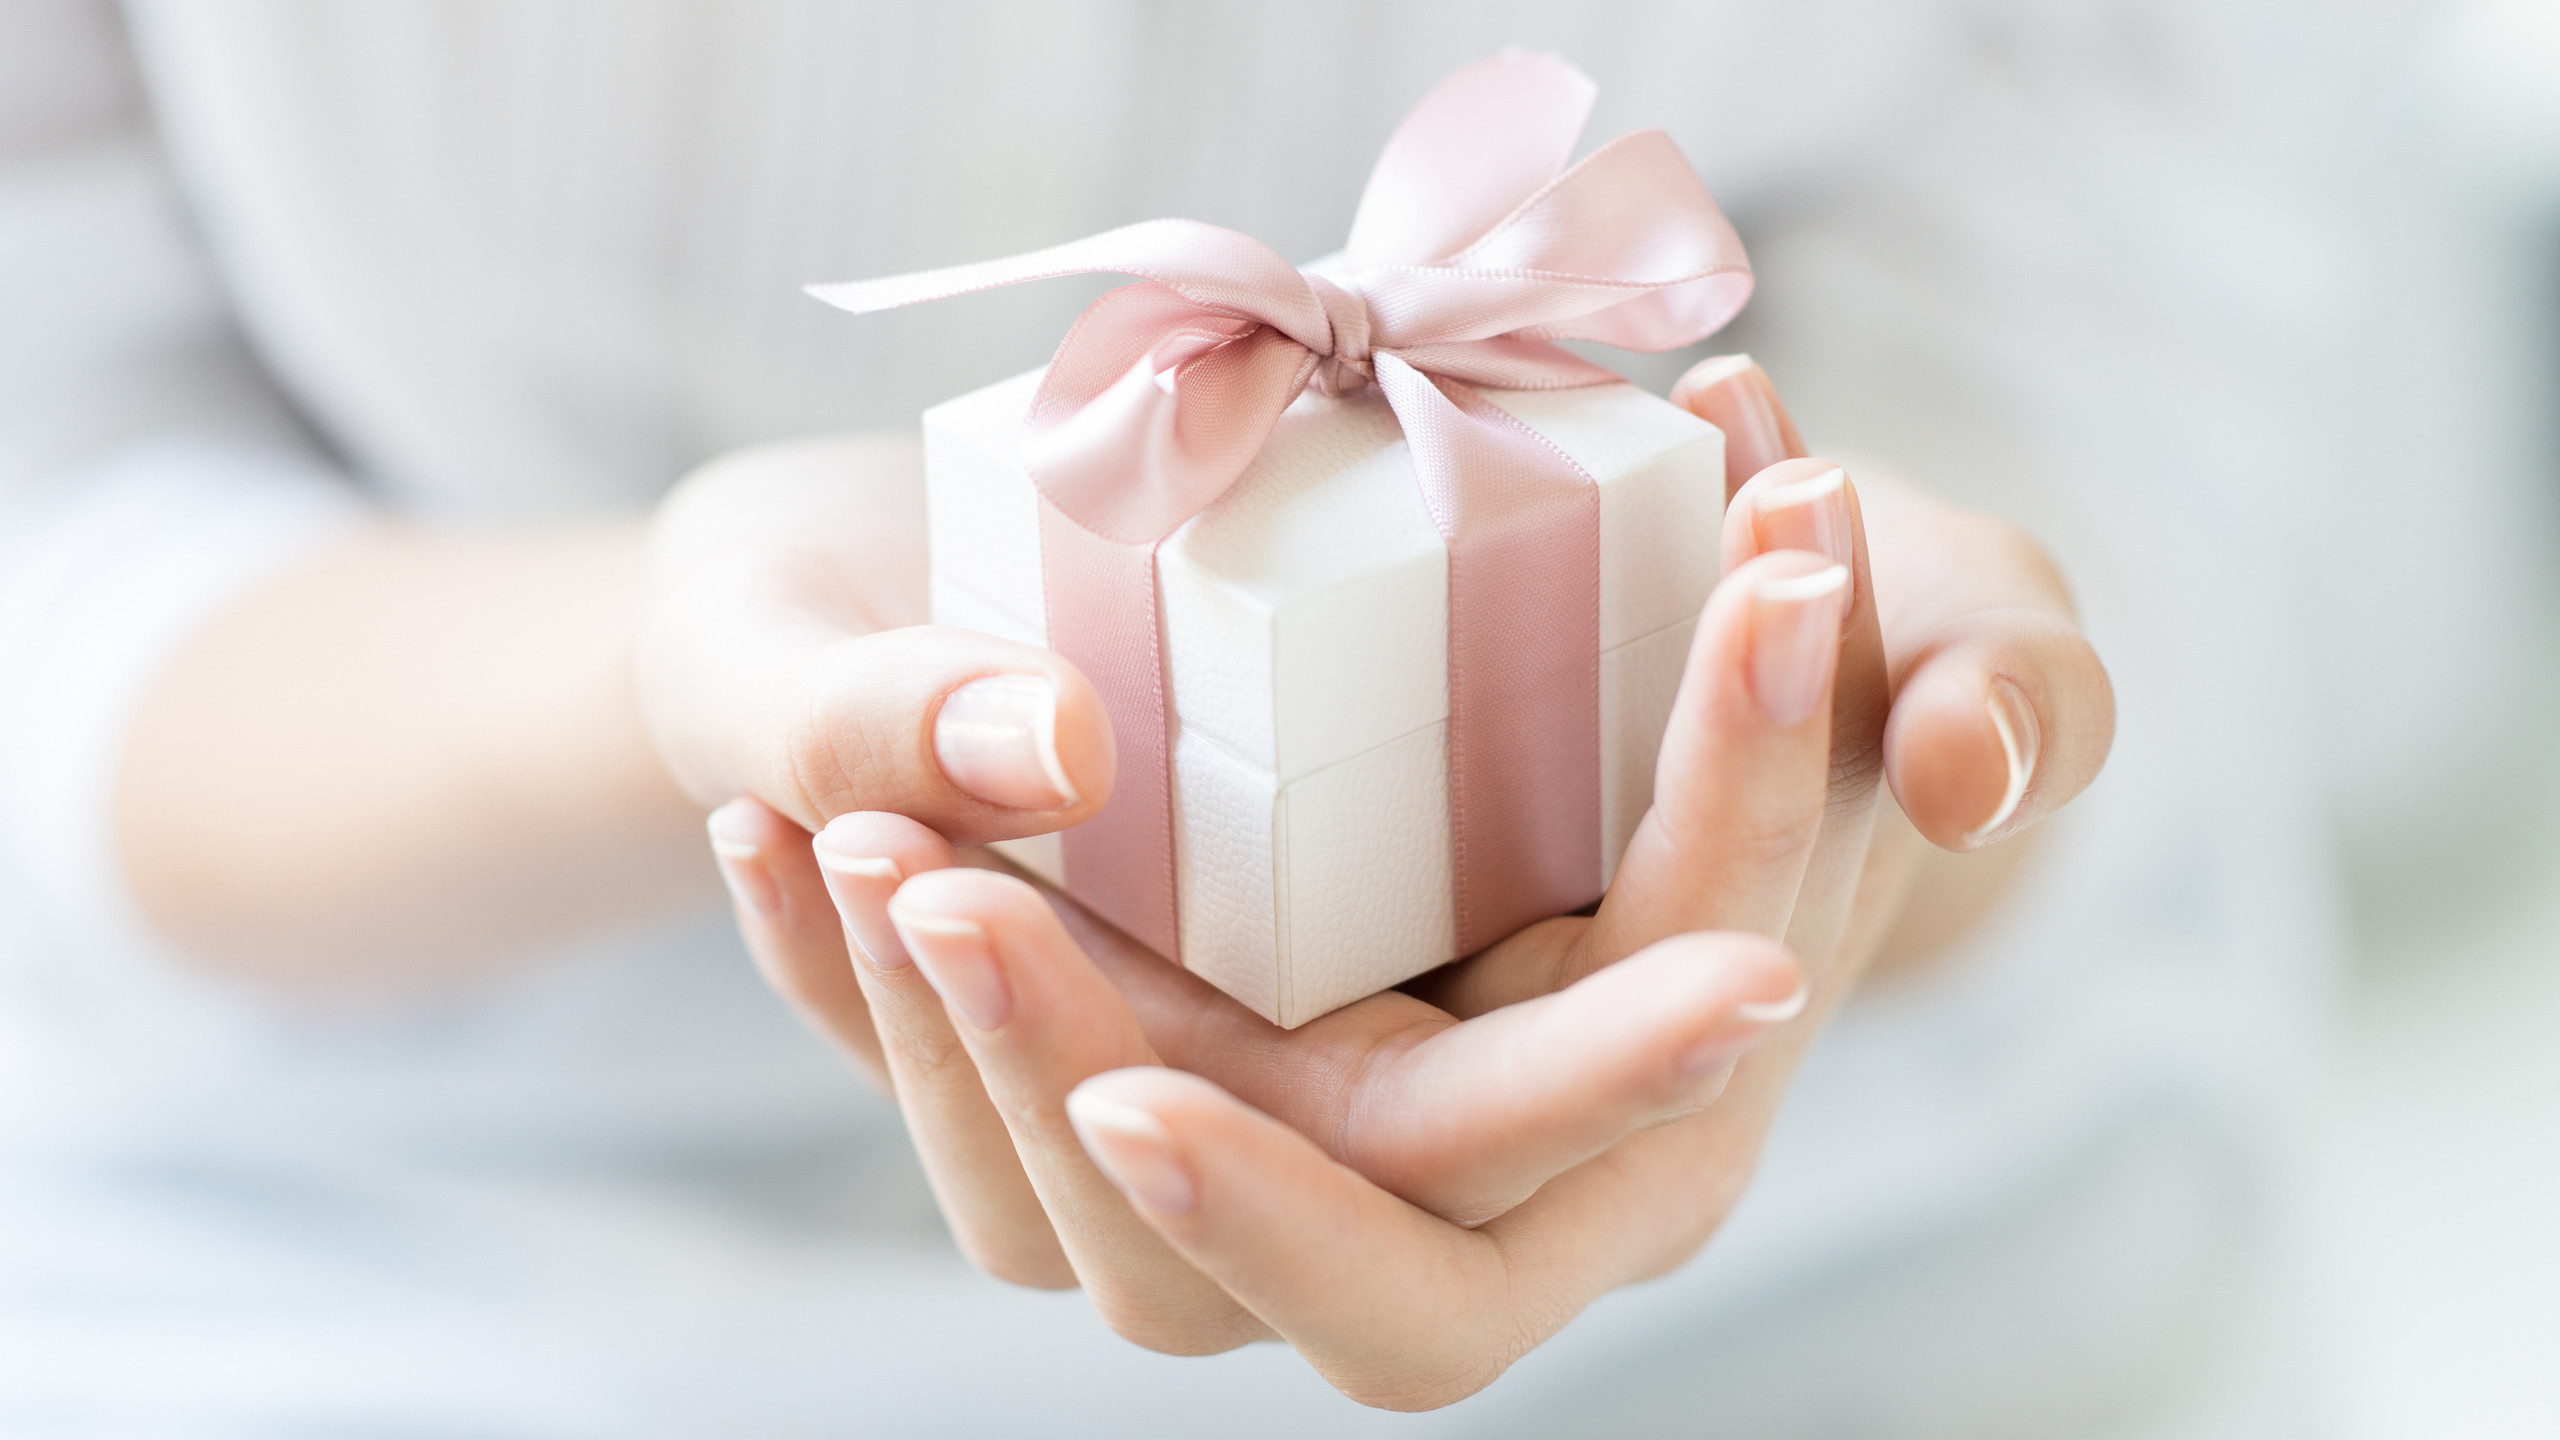 Close up shot of female hands holding a small gift wrapped with pink ribbon. Small gift in the hands